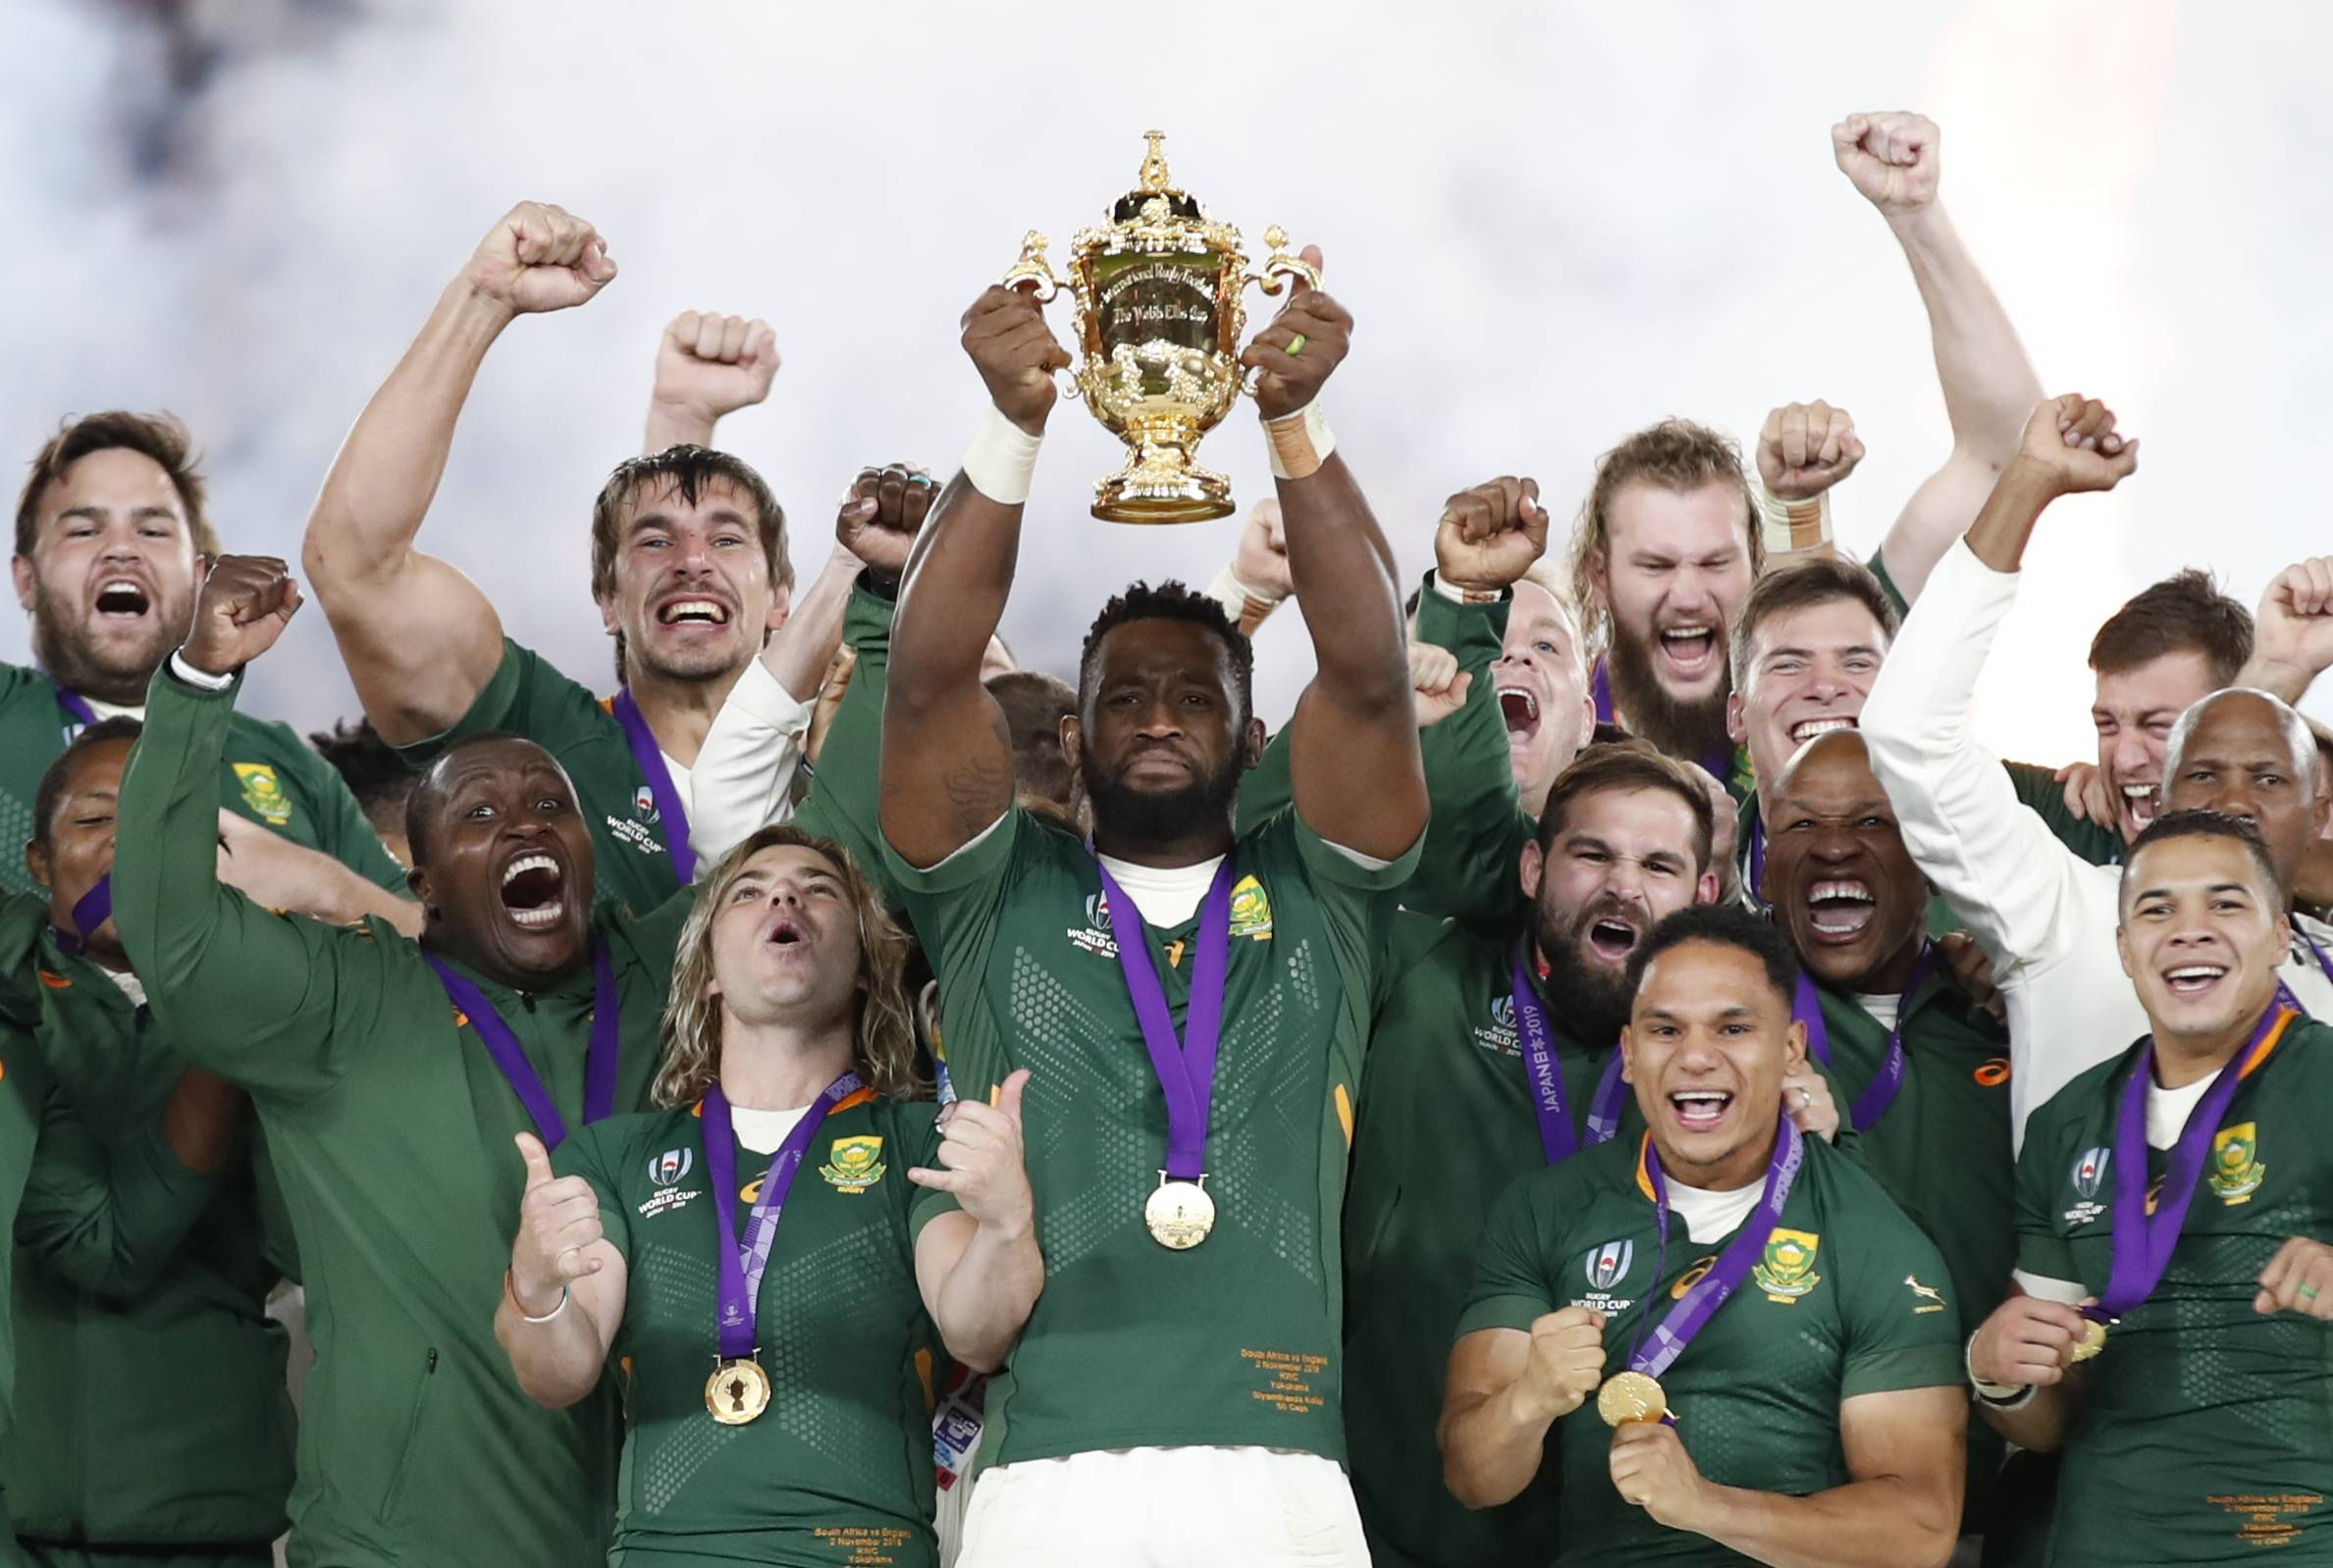 South Africa celebrates after winning the Rugby World Cup on Nov. 2, 2019, in Yokohama.  | REUTERS